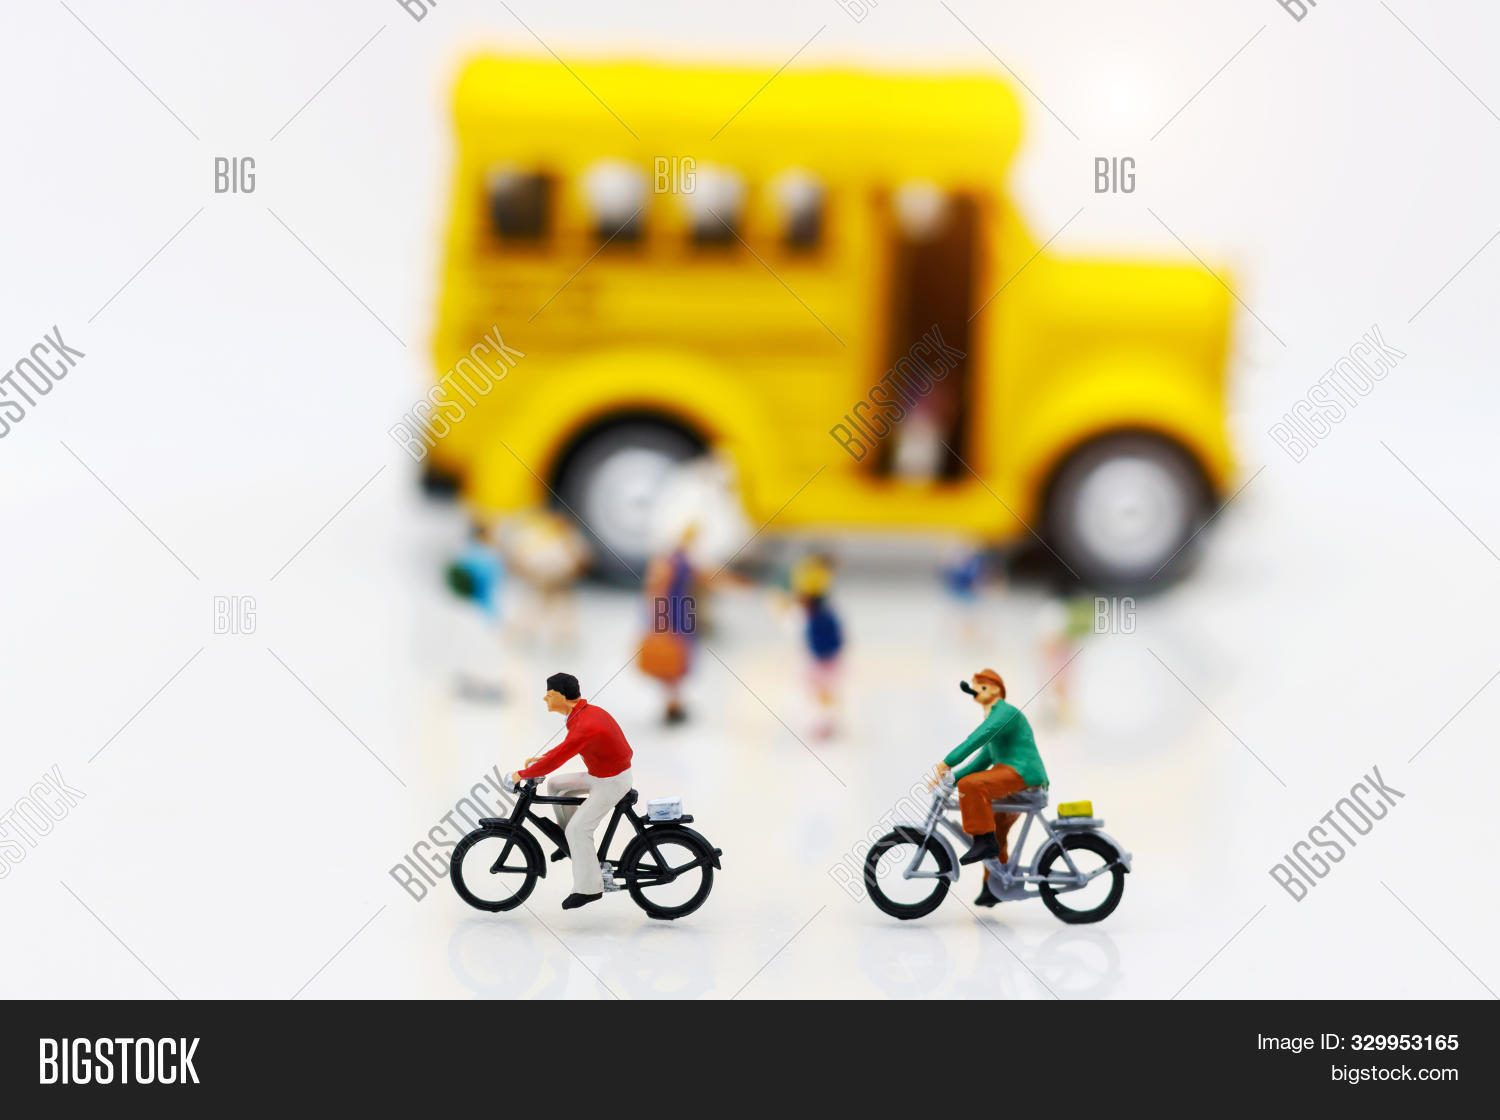 Miniature People Enjoy Riding A Bicycle With School Bus.